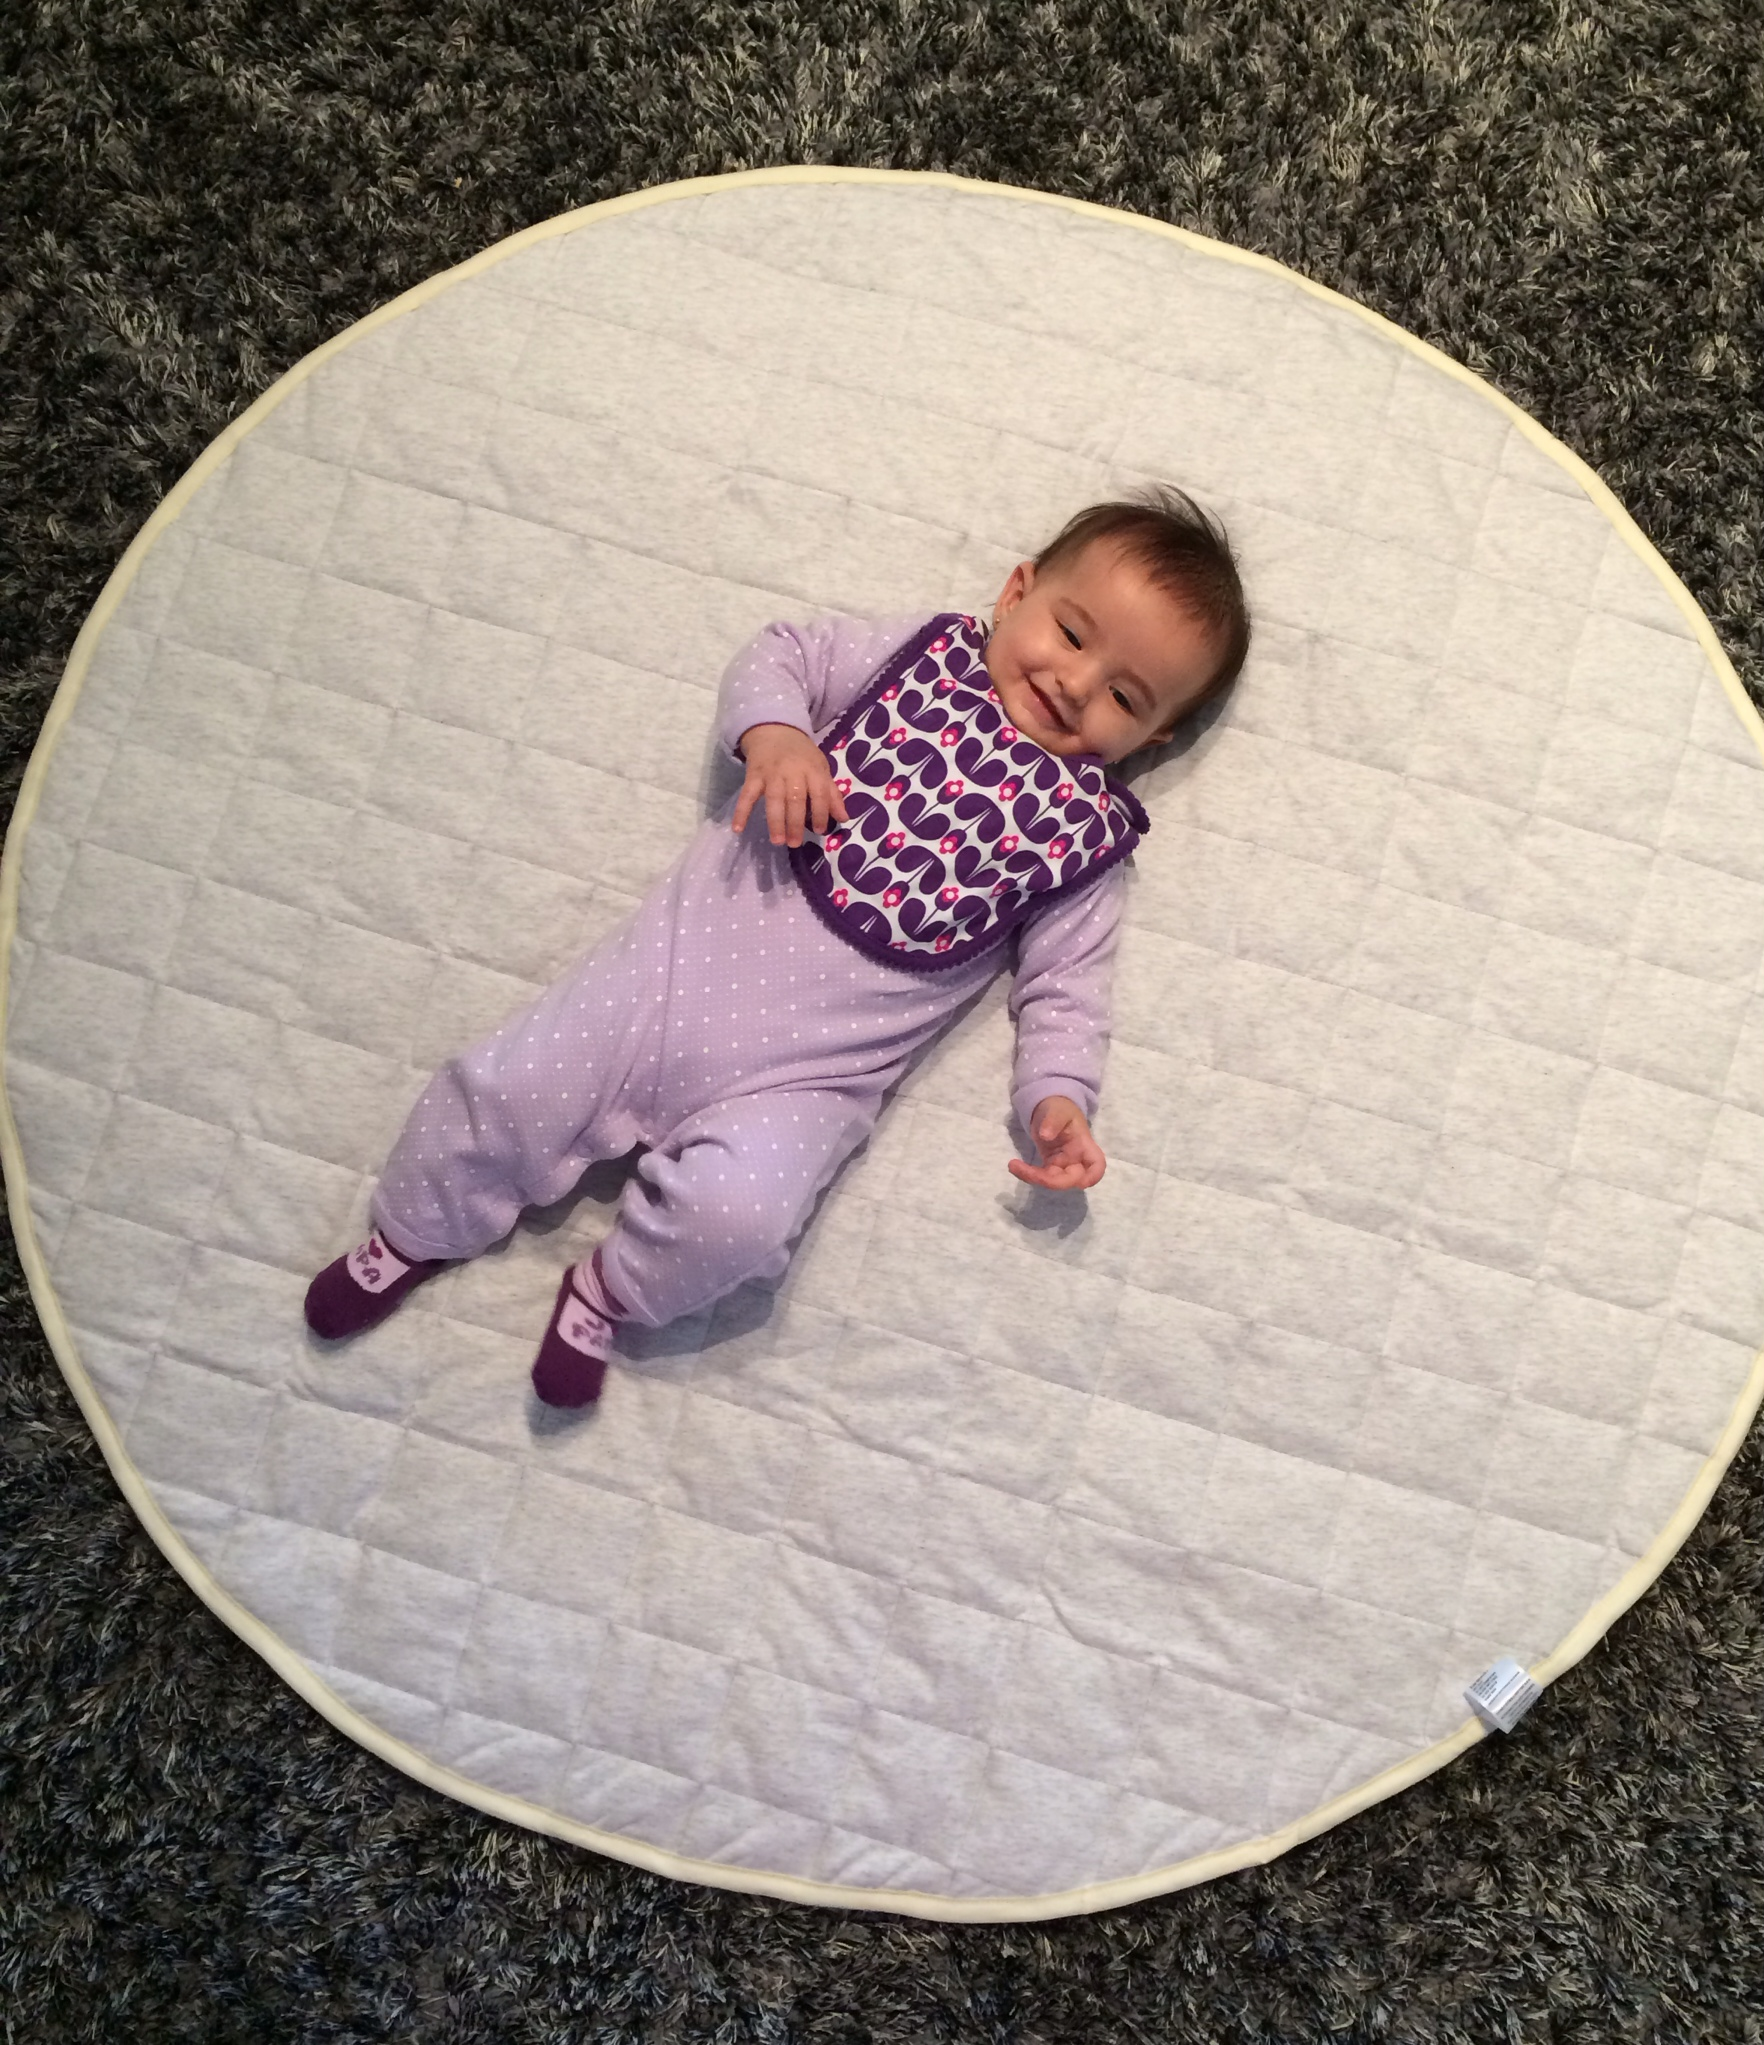 Designer Baby Play Mat Review Bella Buttercup Play Space